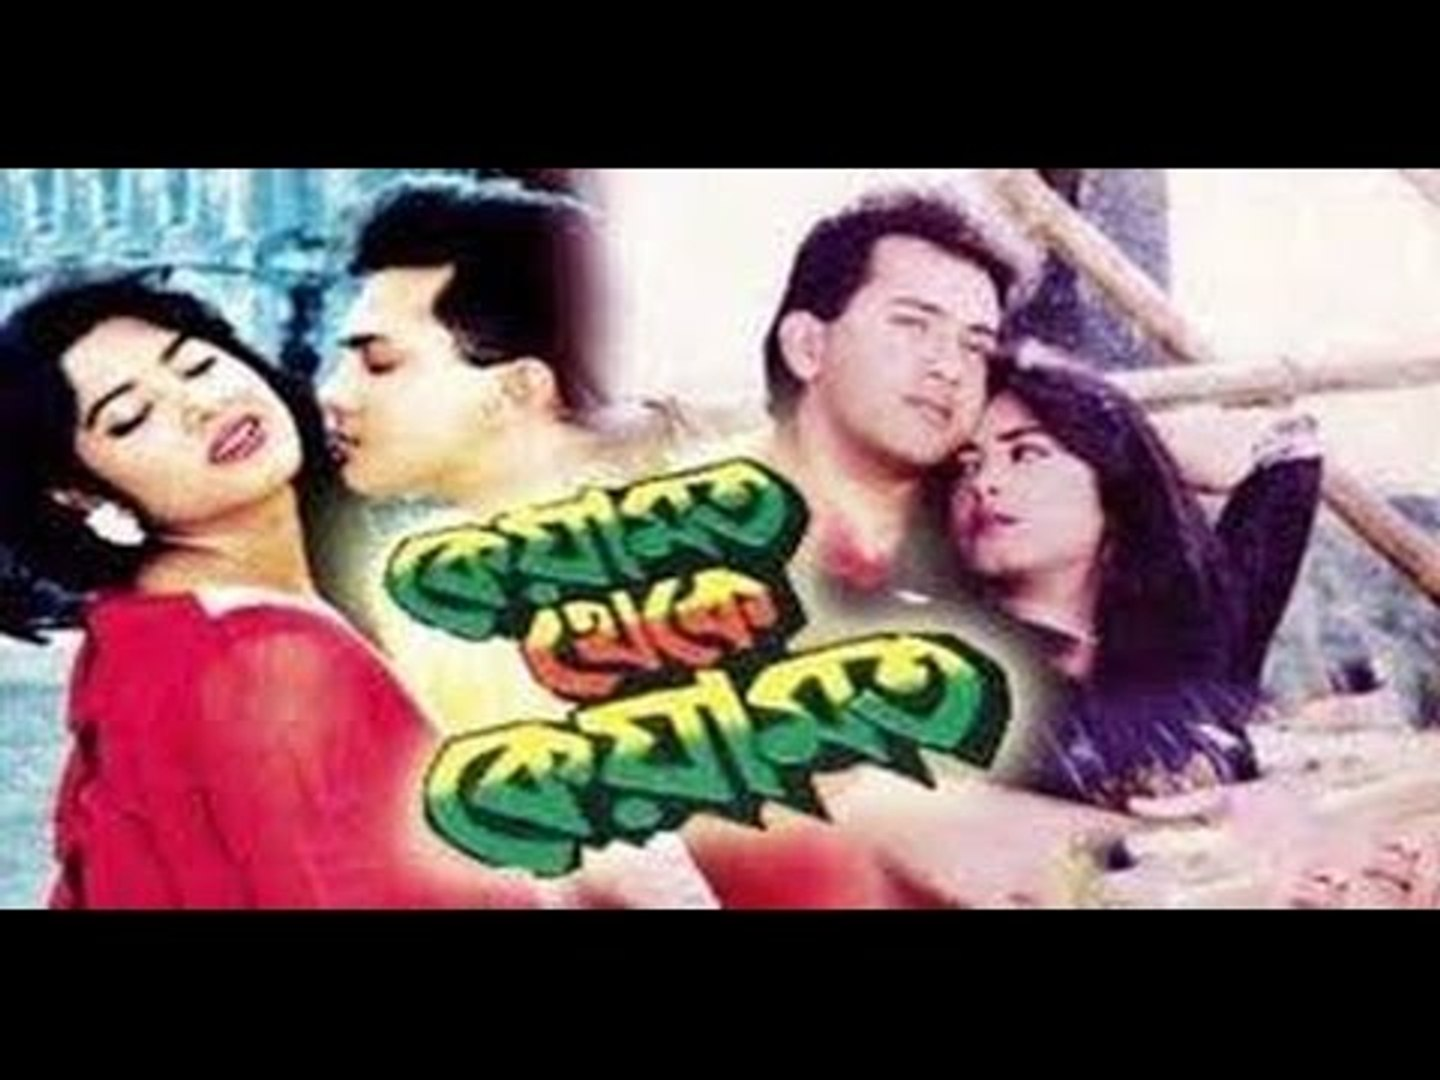 Bangla Movie keyamot Theke Keyamot (কেয়ামত থেকে কেয়ামত) Salman shah